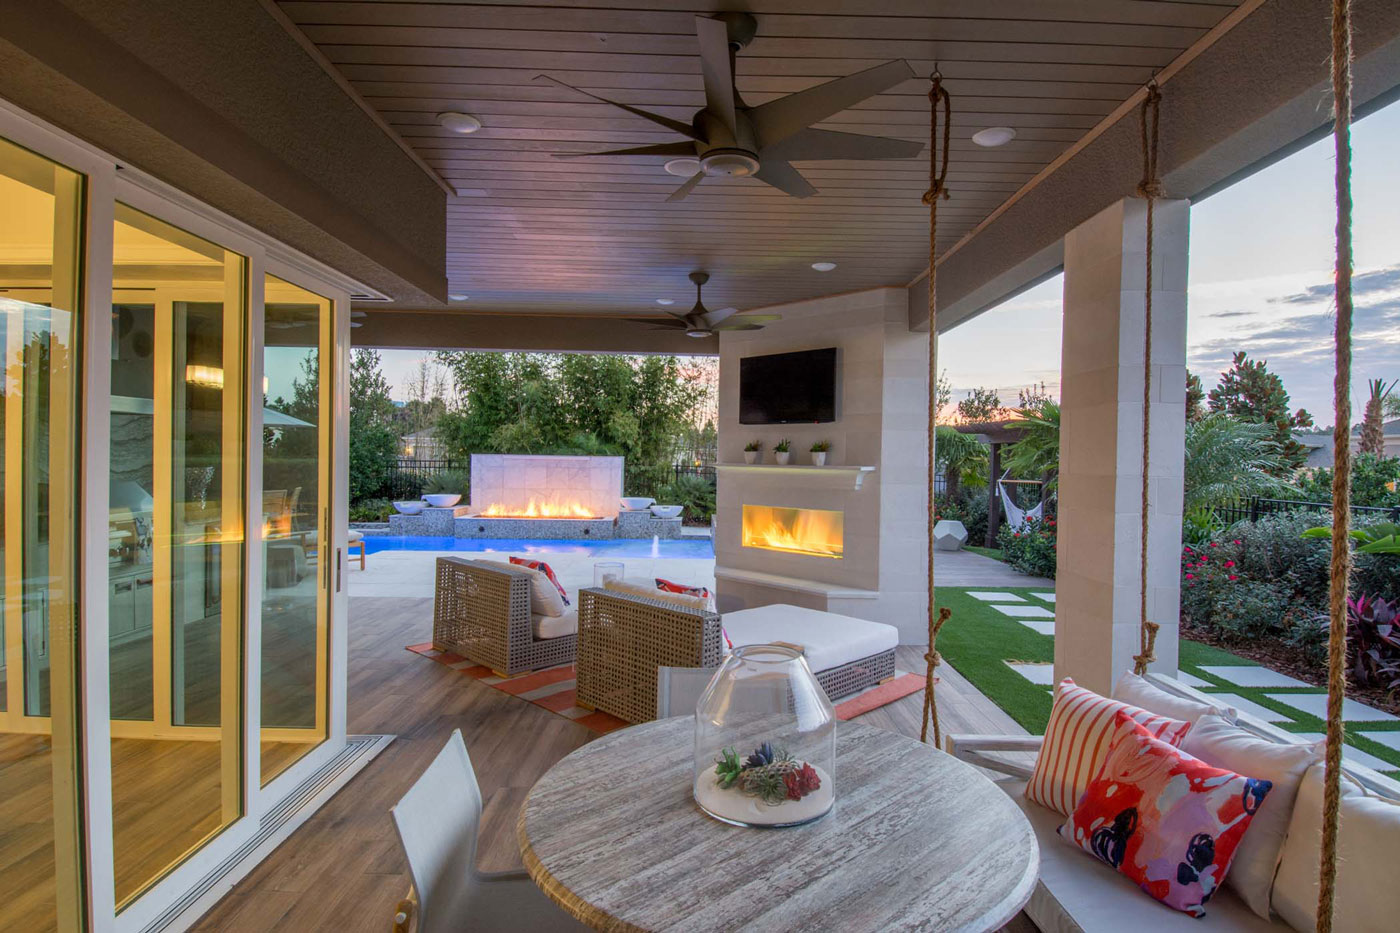 Outdoor Living Space Design the 4 e's of building, designing & selling to 55+ buyer